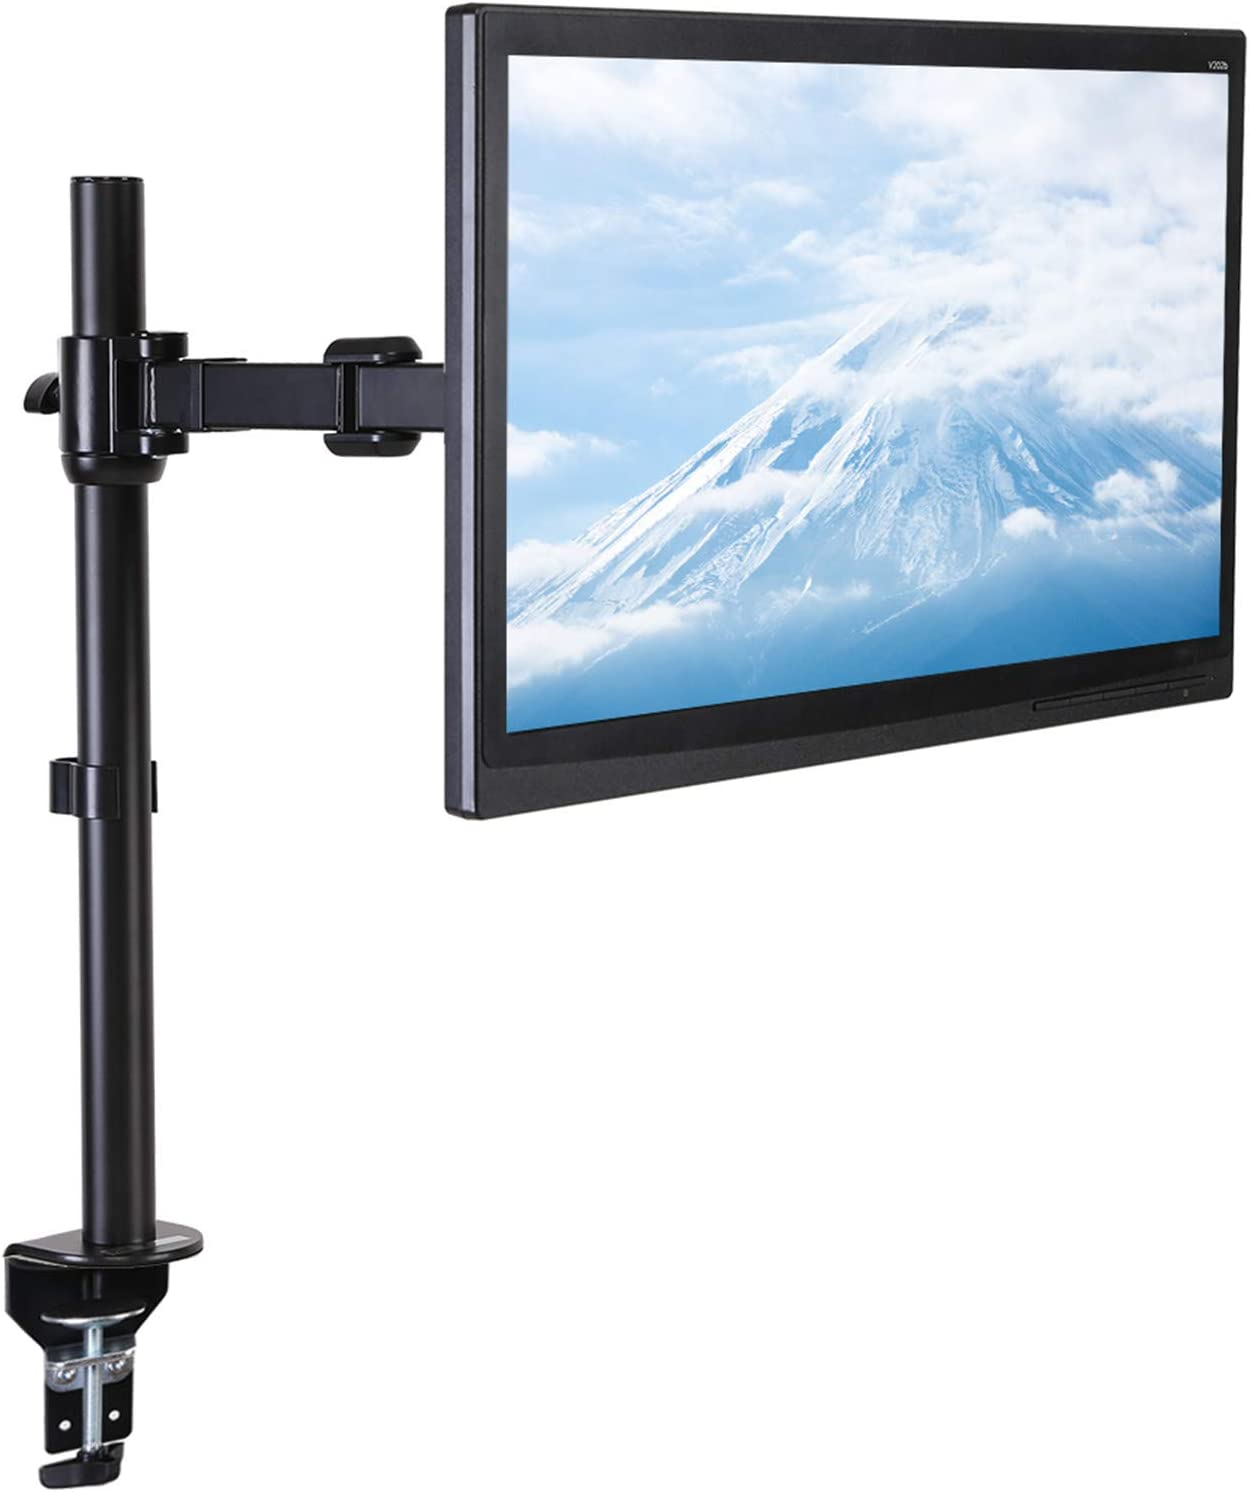 FLEXISPOT Monitor Mount fits 17 inch to 36 inch Ultra Wide LCD Screens with Quick Release Fast Insert Bracket, Holds up to 26.4 lbs (for 1 SCEEN)